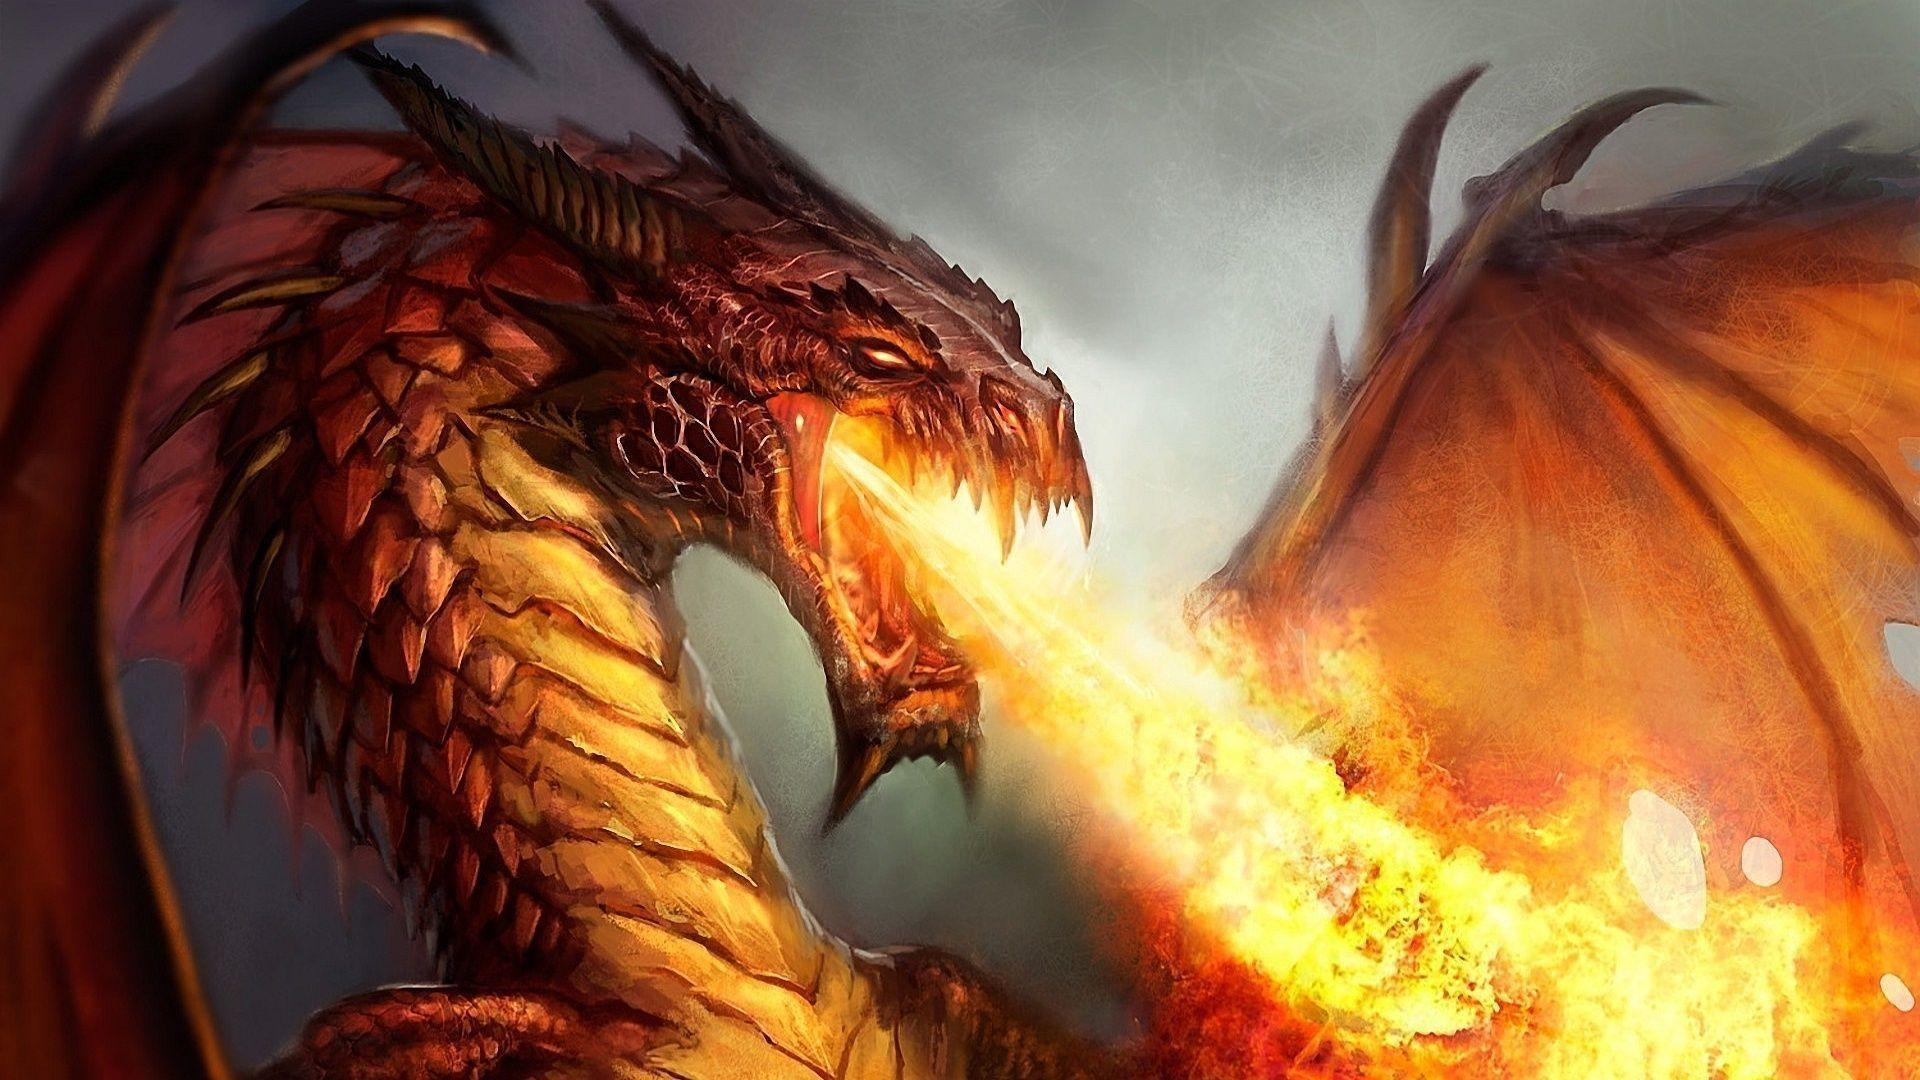 Fire Dragon Wallpapers For Iphone O Dodskypict